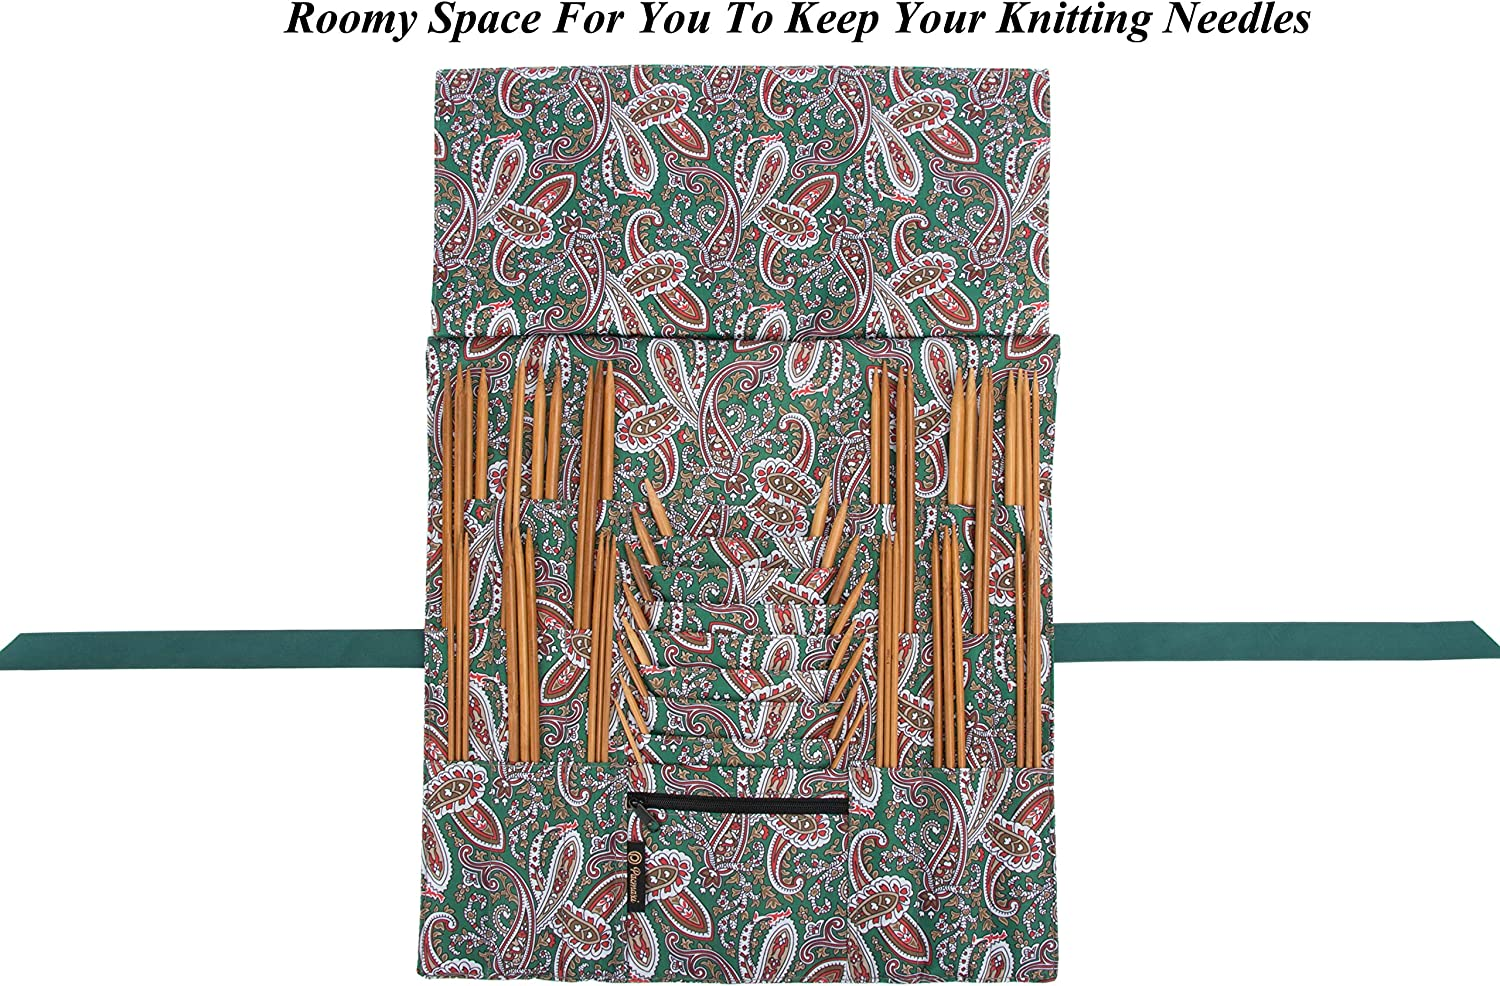 Green NO Accessories Included Pacmaxi Foldable Knitting Needles Storage Case Up to 14 Inch Rolling Knitting Needles Holder for Straight and Circular Knitting Needles